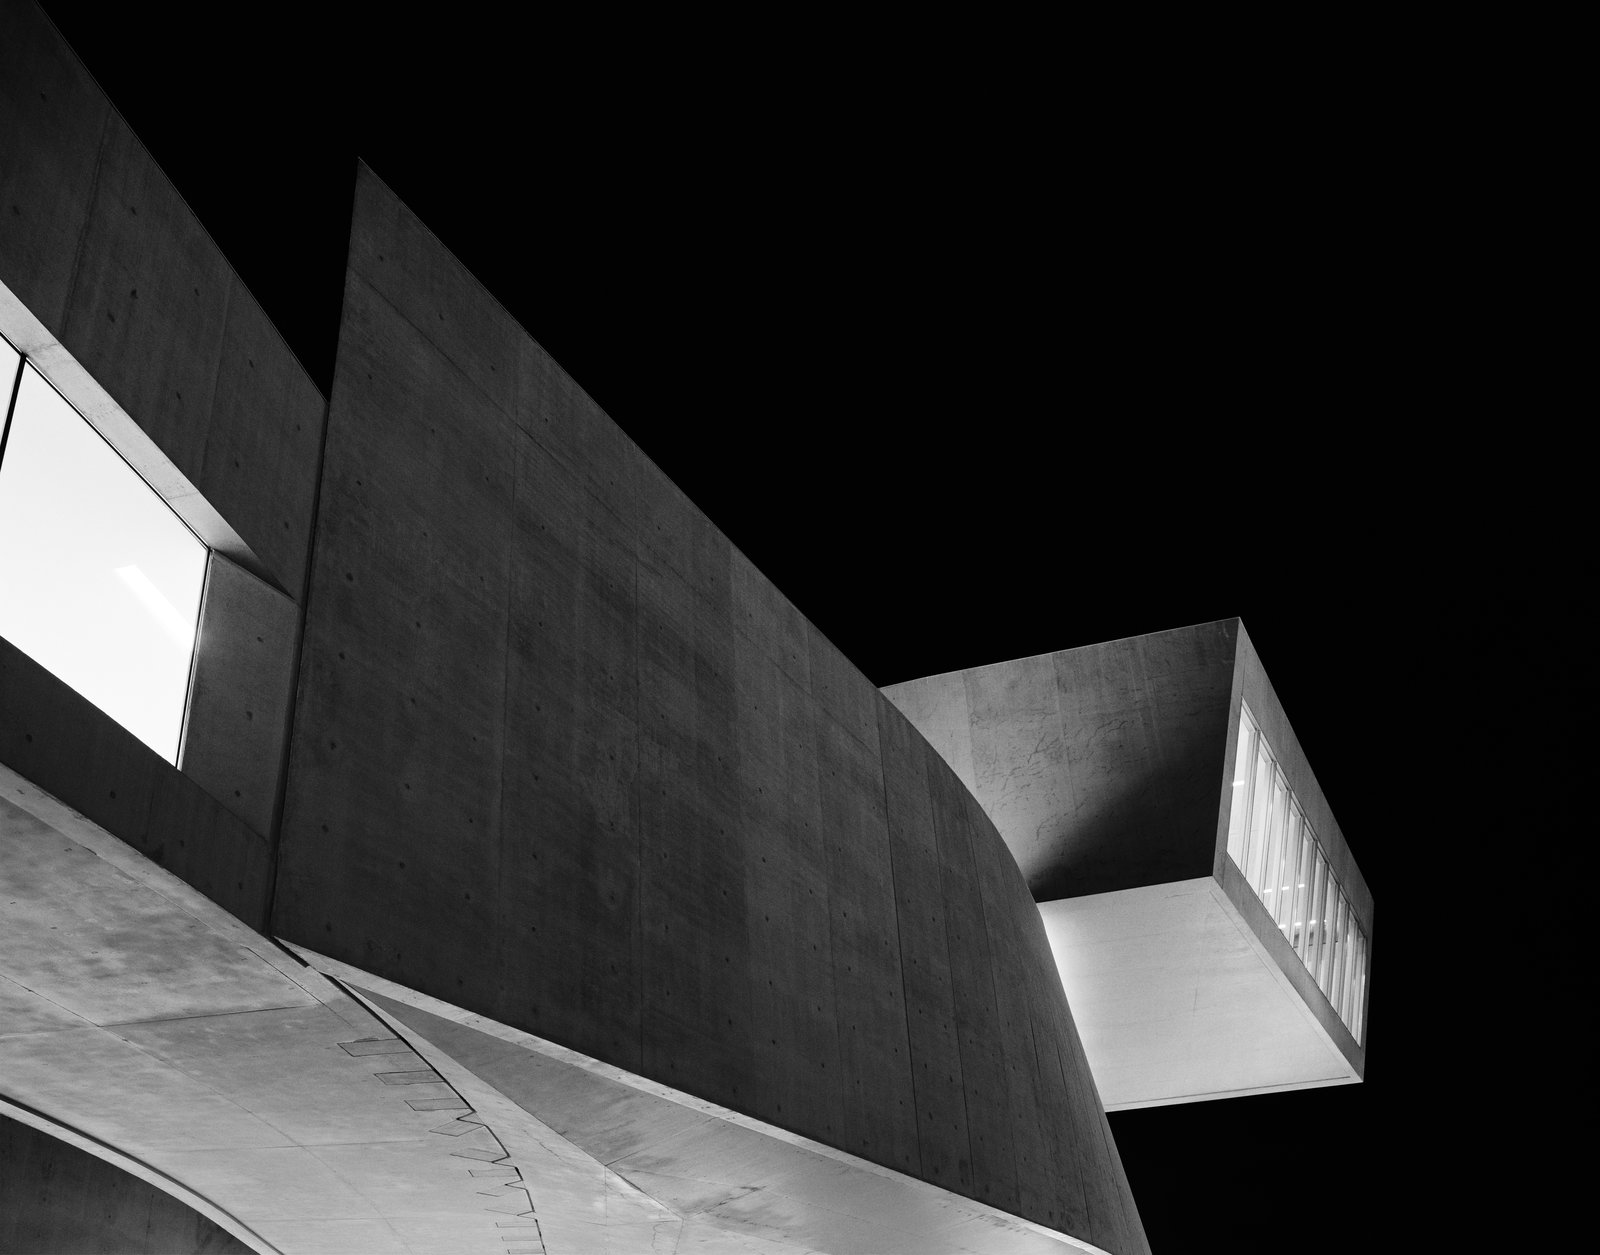 Maxxi Diptychon, Zaha Hadid, 2009, silver gelatin print.  Photo 1 of 8 in A New Los Angeles Exhibition Celebrates the Architectural Photography of Hélène Binet